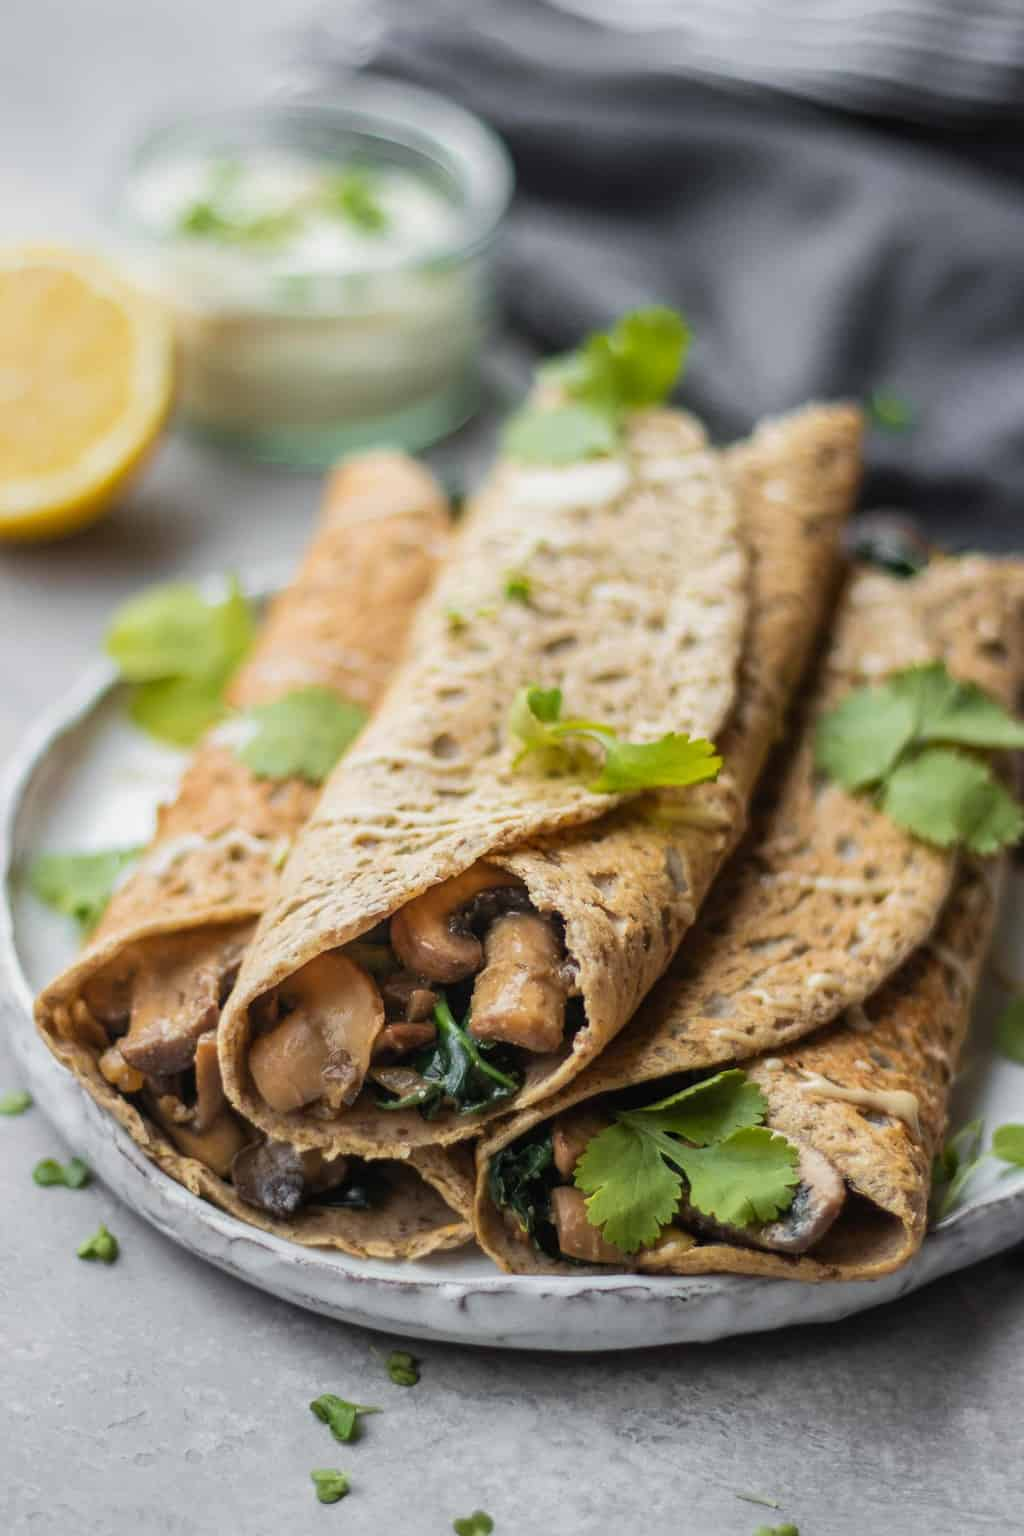 Gluten-free savoury crepes with buckwheat flour